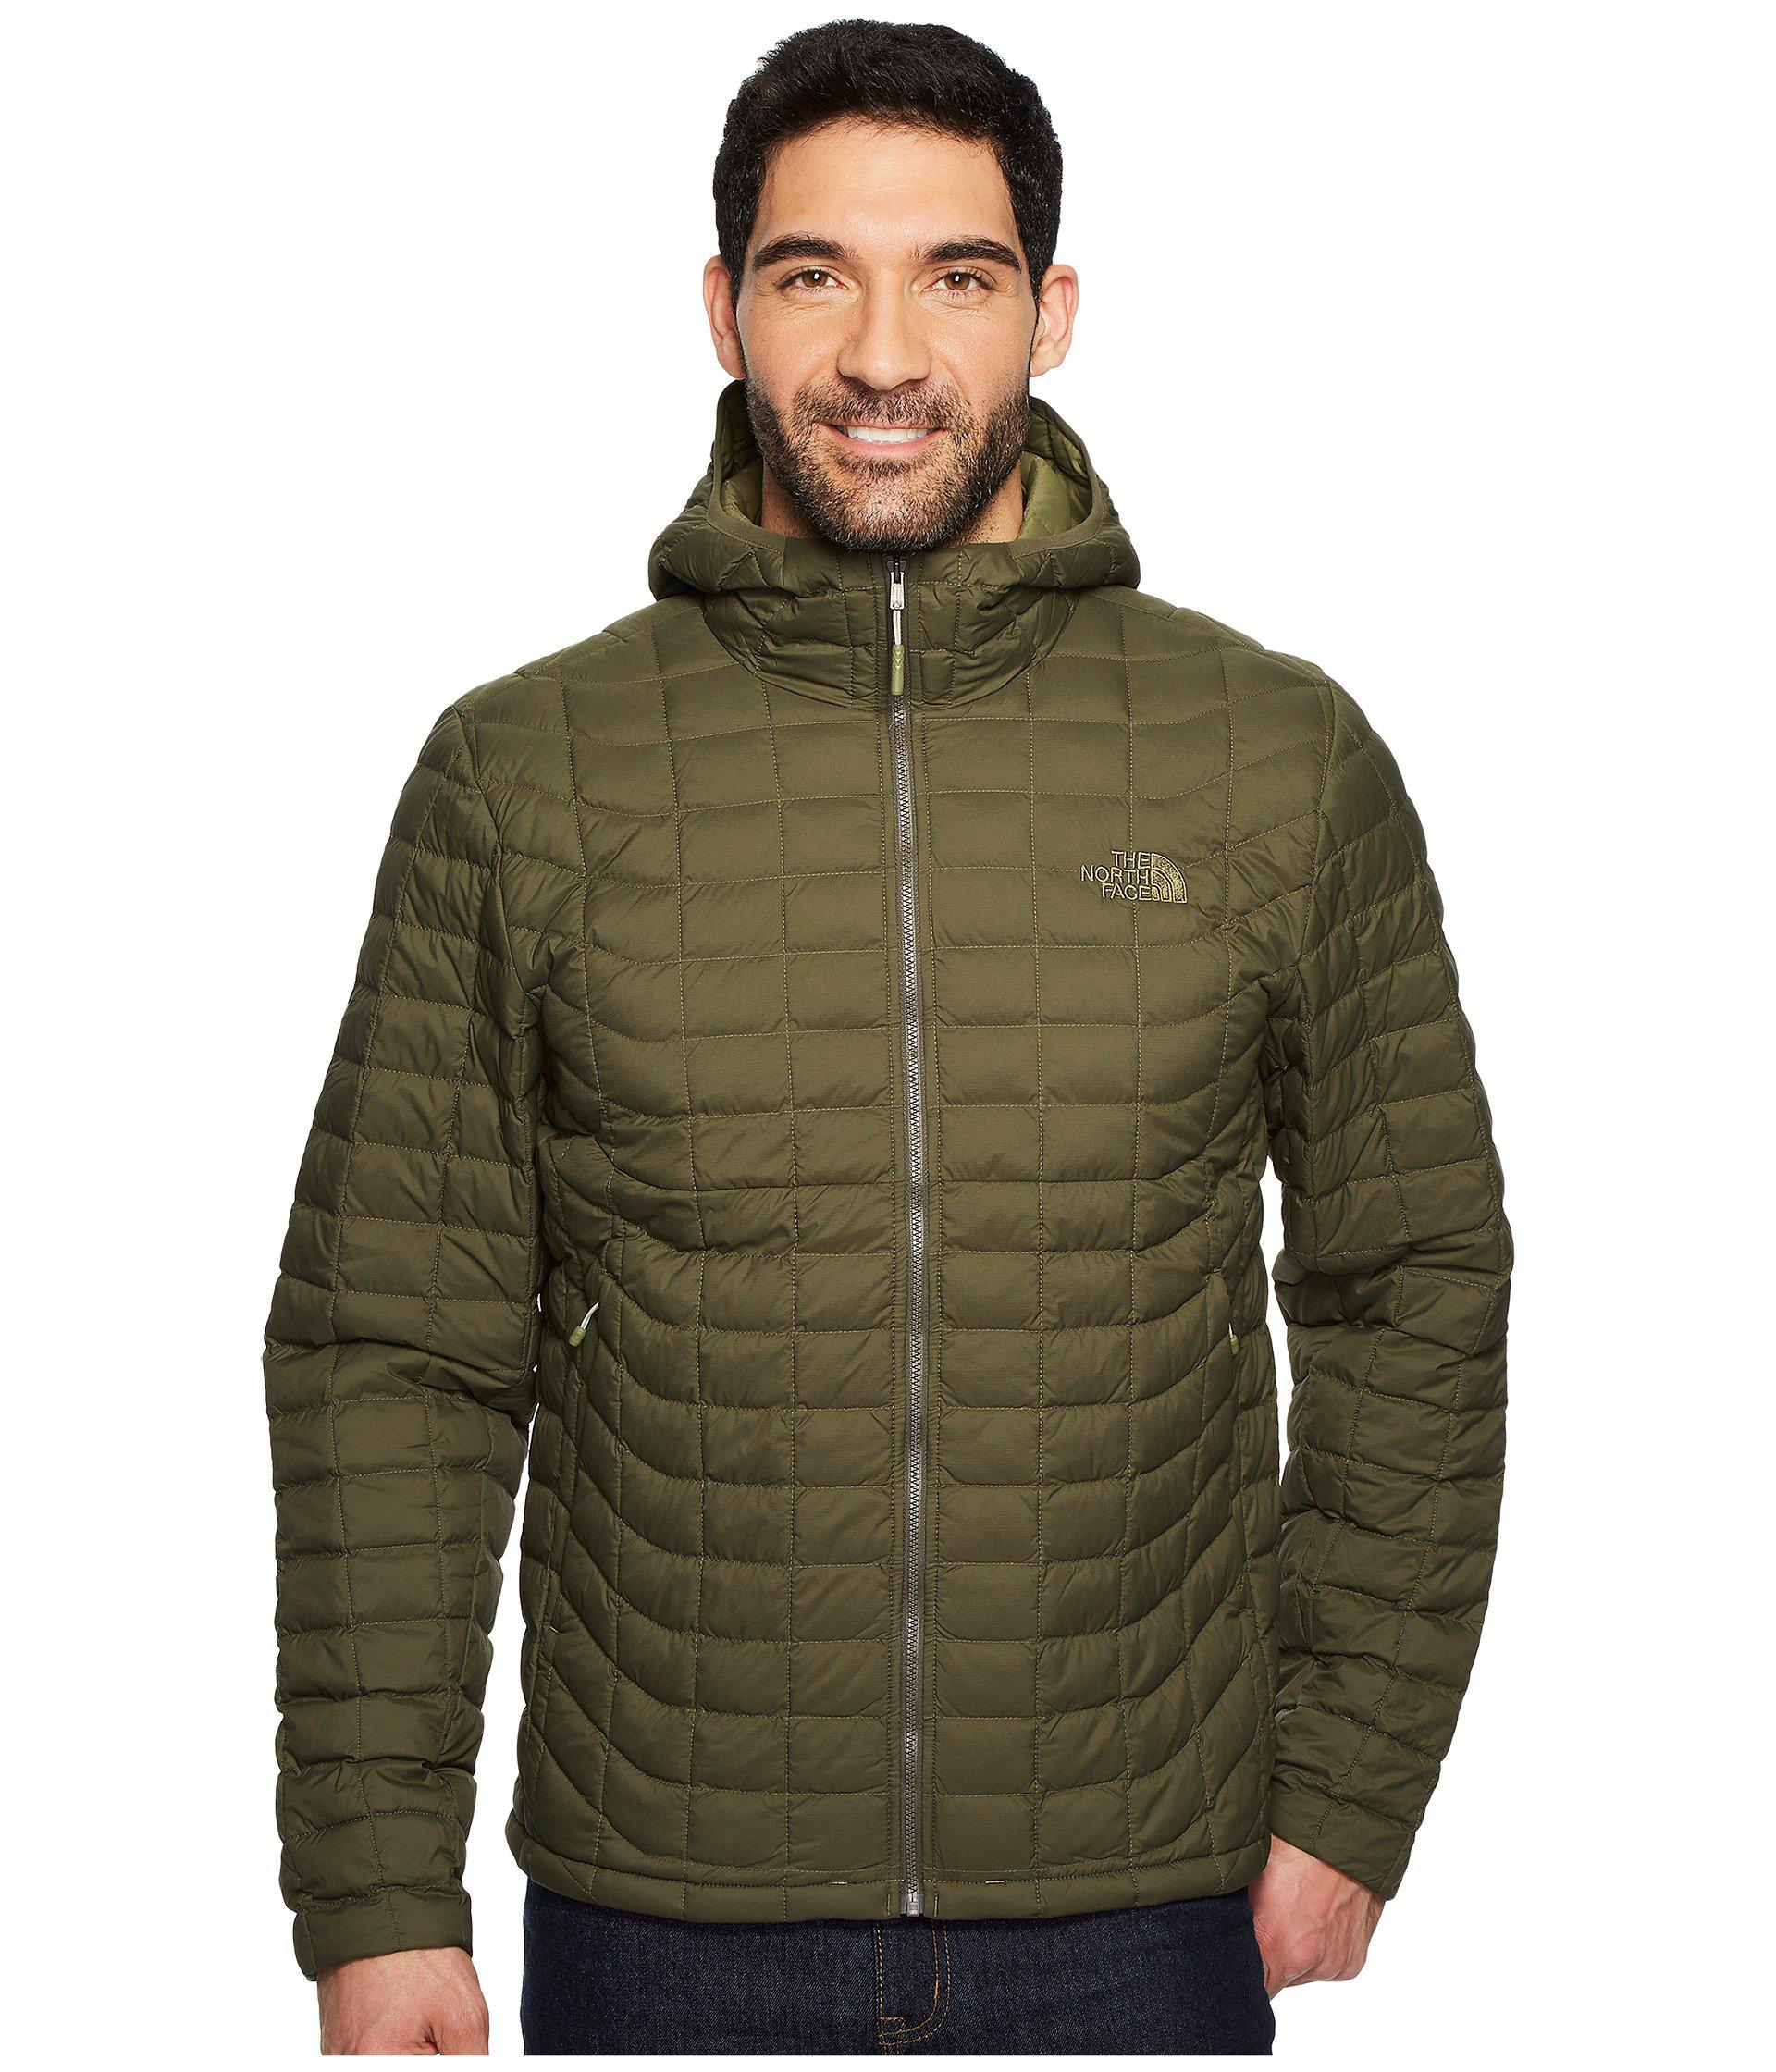 lyst the north face thermoball hoodie in green for men. Black Bedroom Furniture Sets. Home Design Ideas